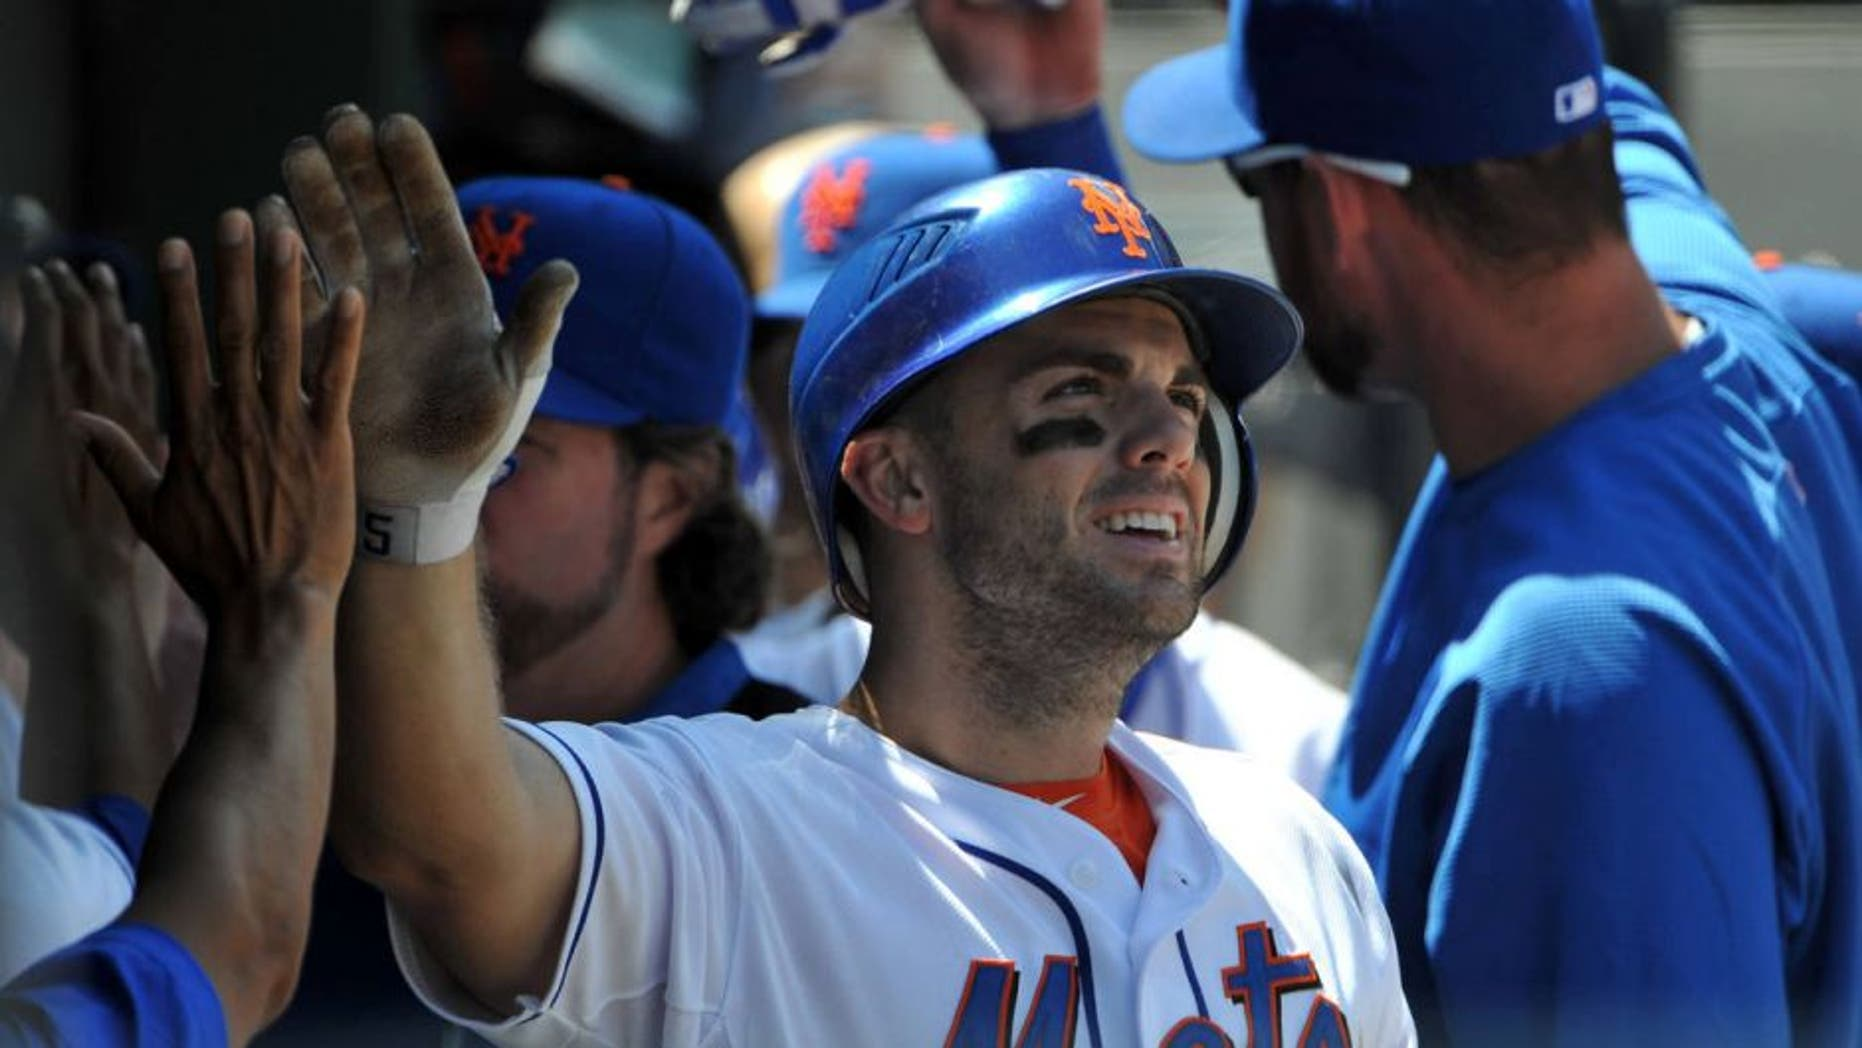 NEW YORK, NY - AUGUST 11: David Wright #5 of the New York Mets is congratulated after scoring on a double by Lucas Duda #21 of the New York Mets (not pictured) in the bottom of the third inning against the San Diego Padres at Citi Field on August 11, 2011 in the Flushing neighborhood of the Queens borough of New York City. (Photo by Christopher Pasatieri/Getty Images)